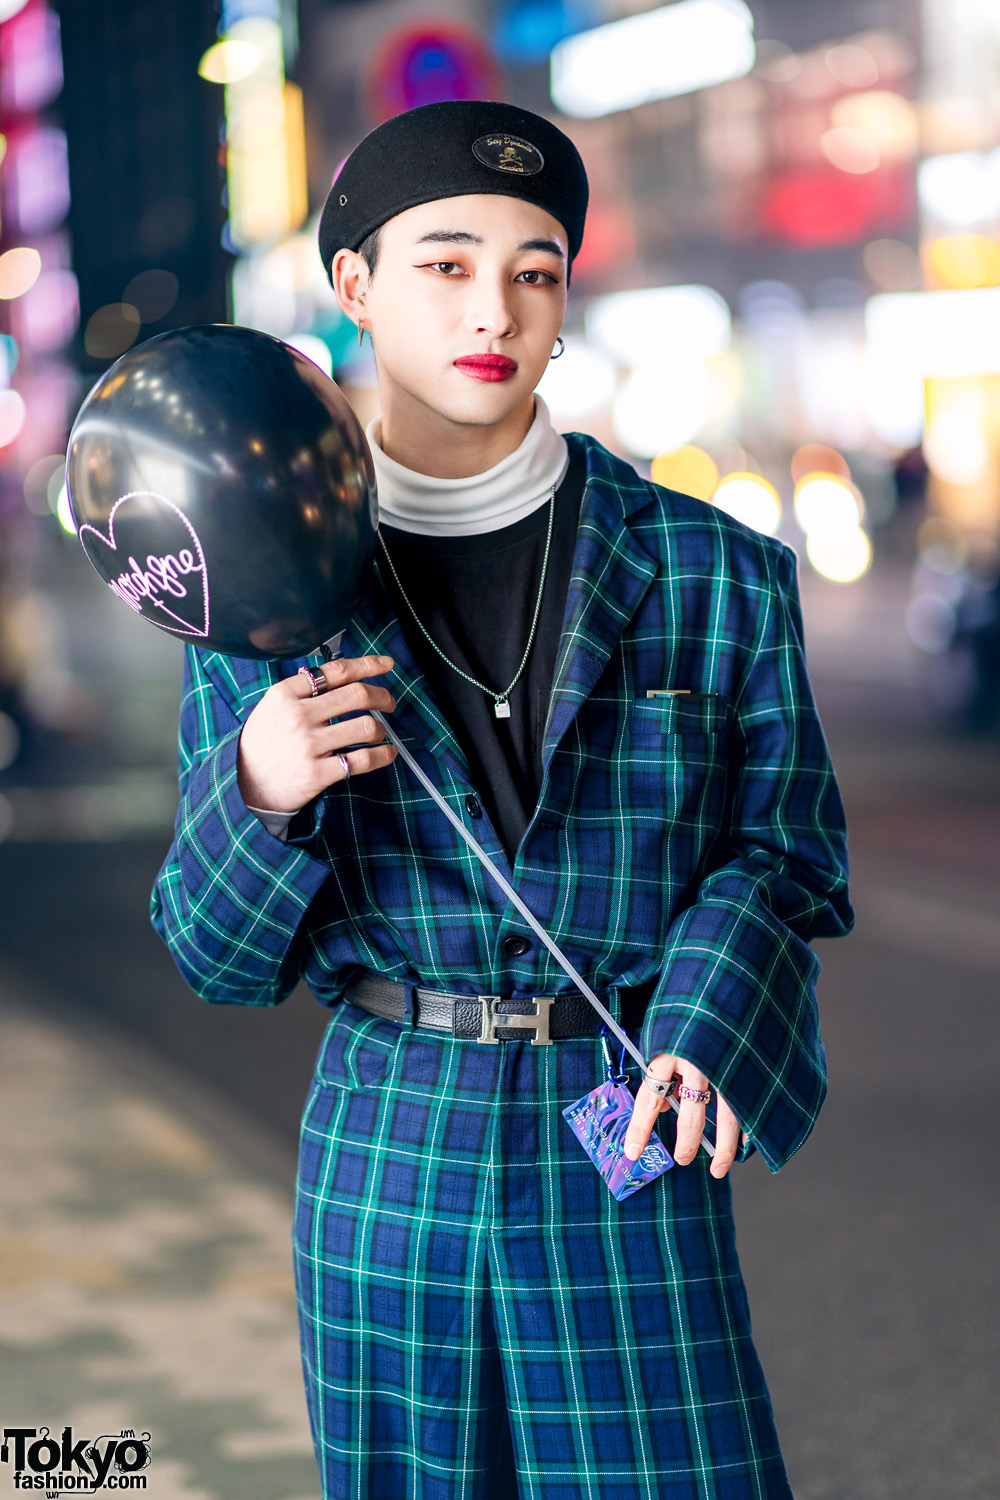 005490abf Zara, Never Mind the XU, and Gucci are some of Kouki's favorite fashion  brands, and he likes listening to K-pop music. For his social media  updates, ...